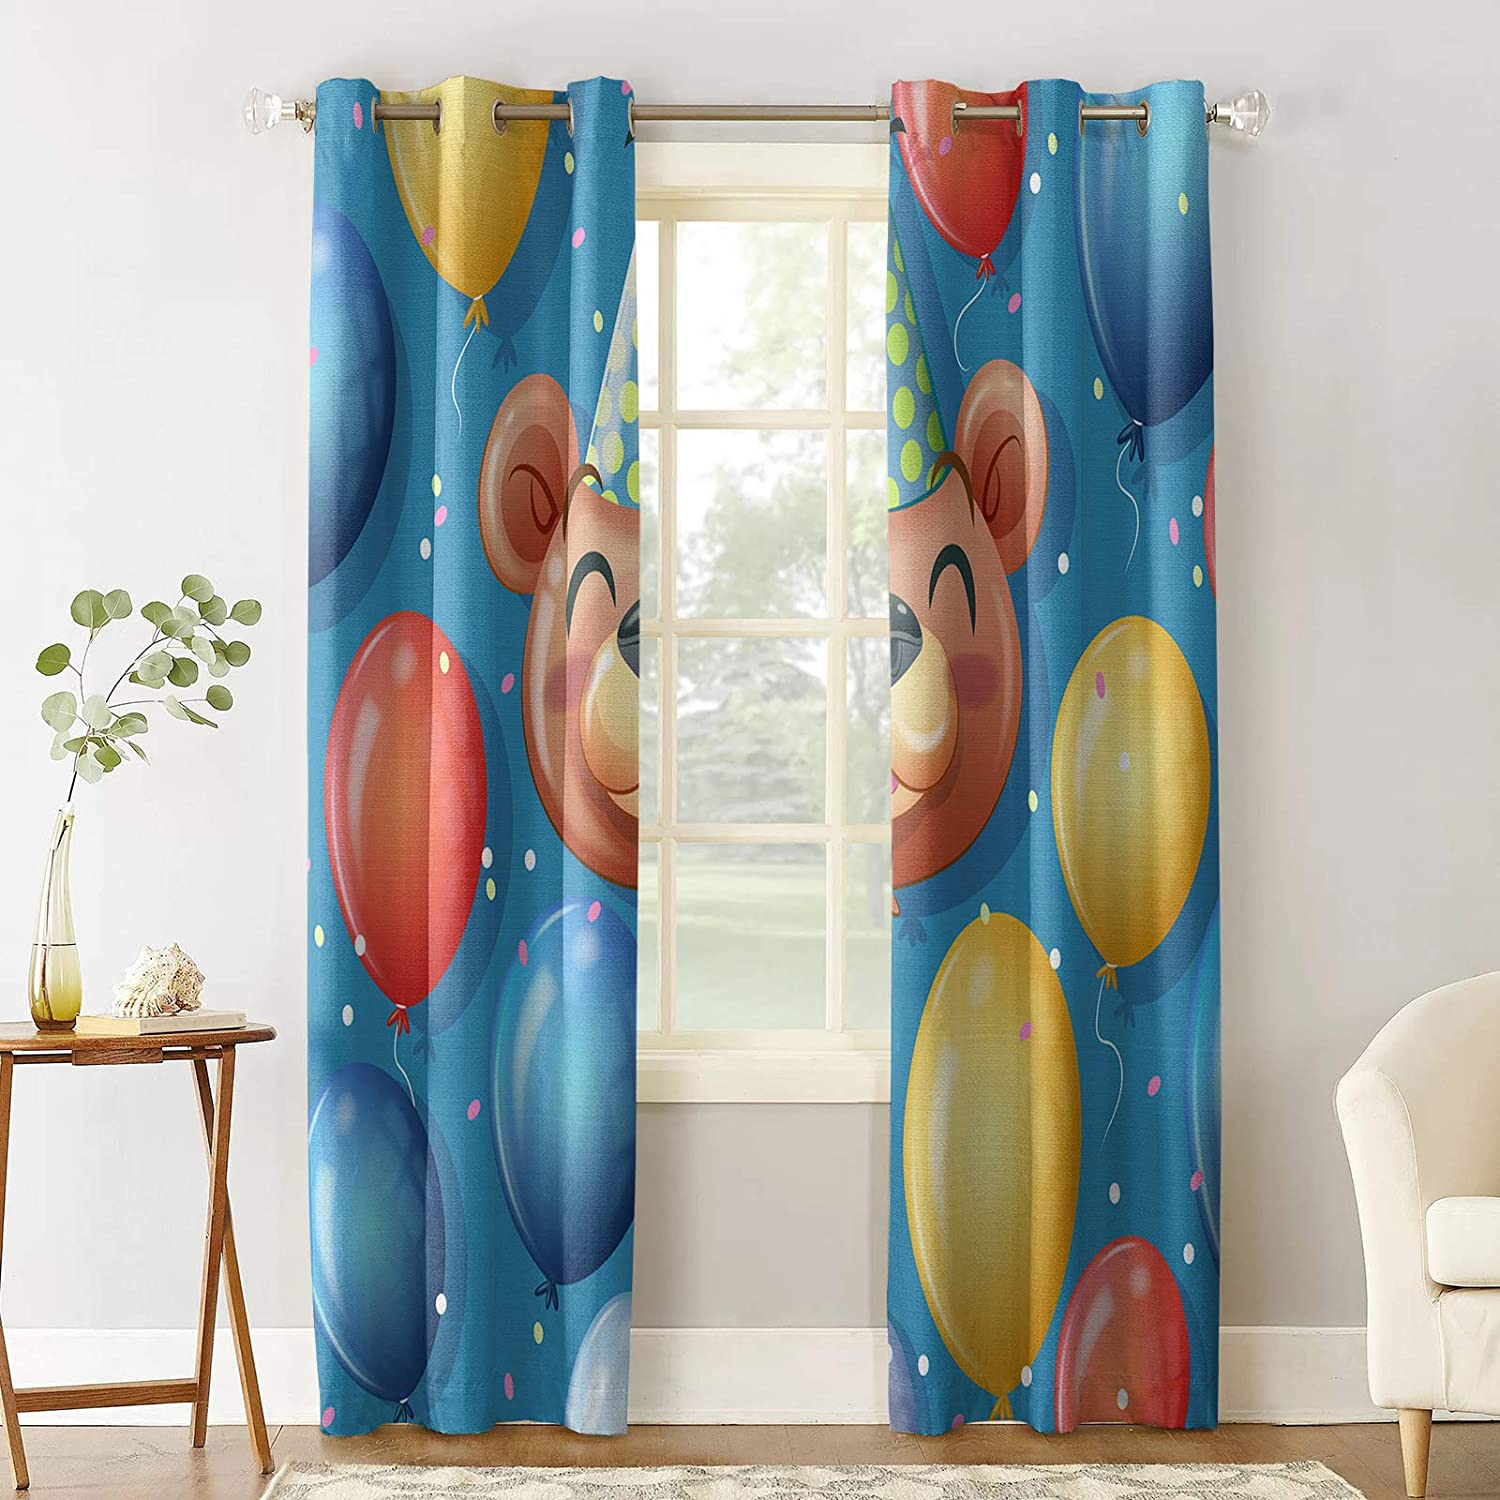 Prime Leader Blackout New life Indefinitely Curtain for Balloo Party Colorful Bedroom